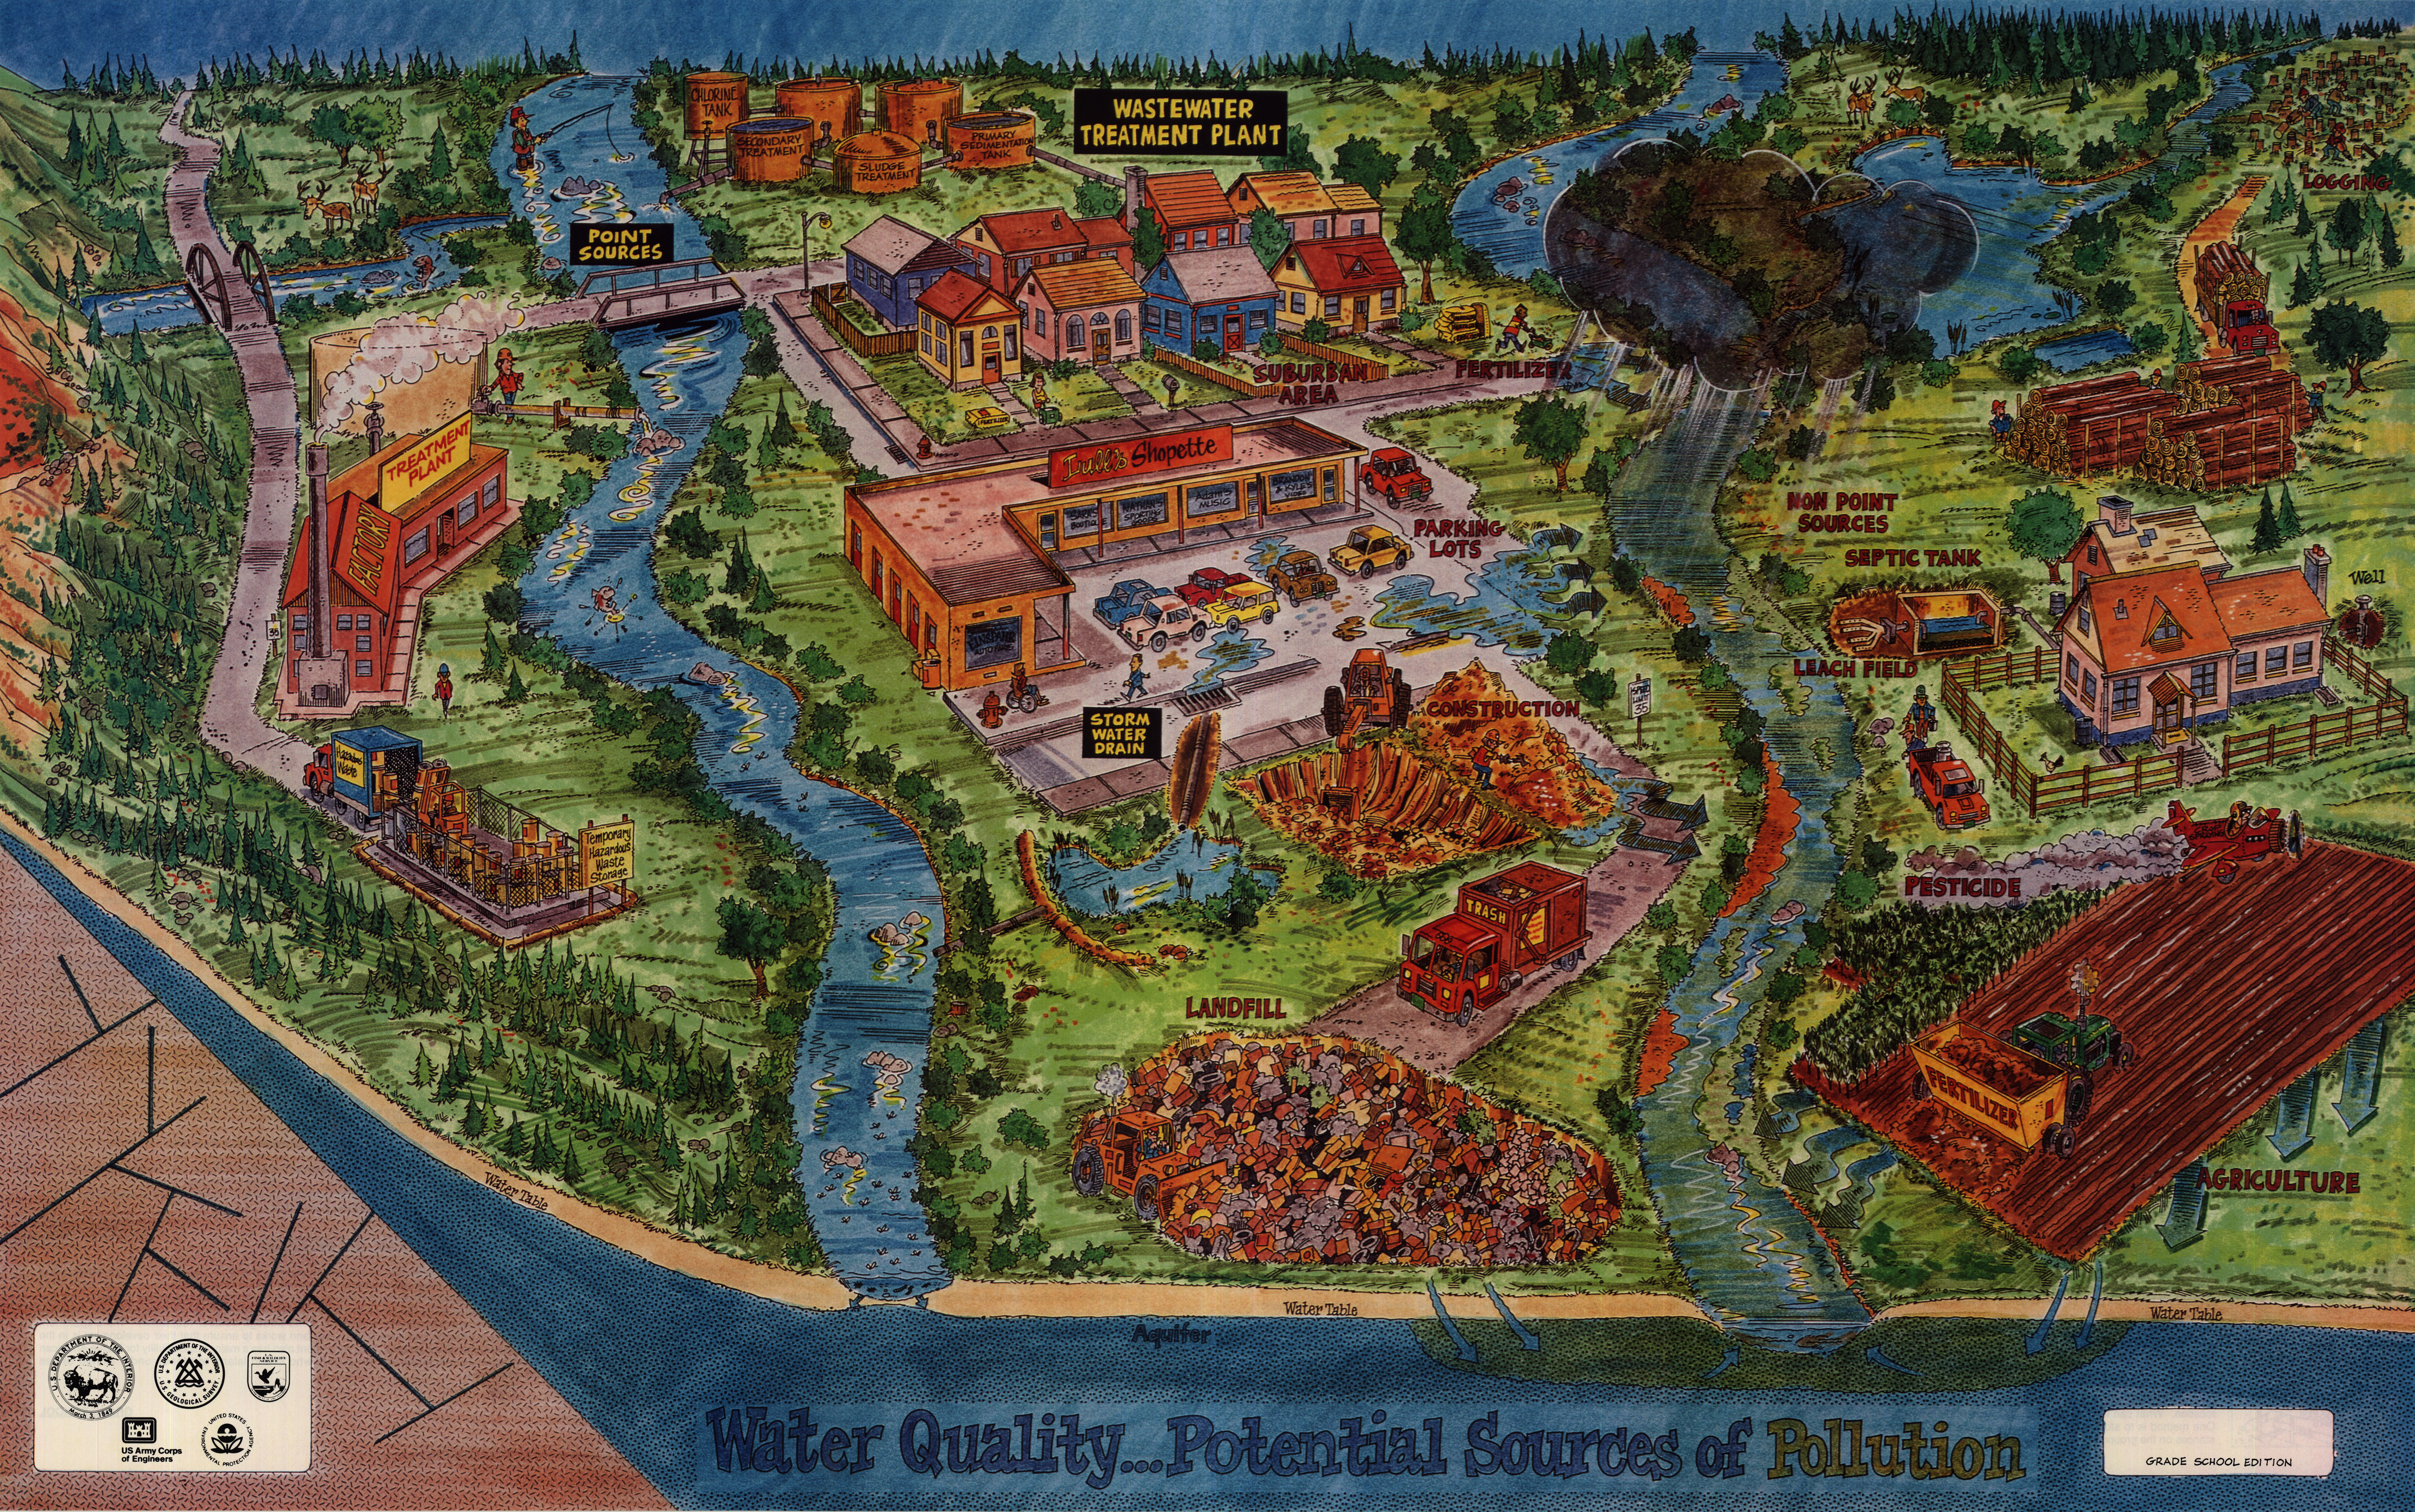 USGS Water Resources:Water Education Posters